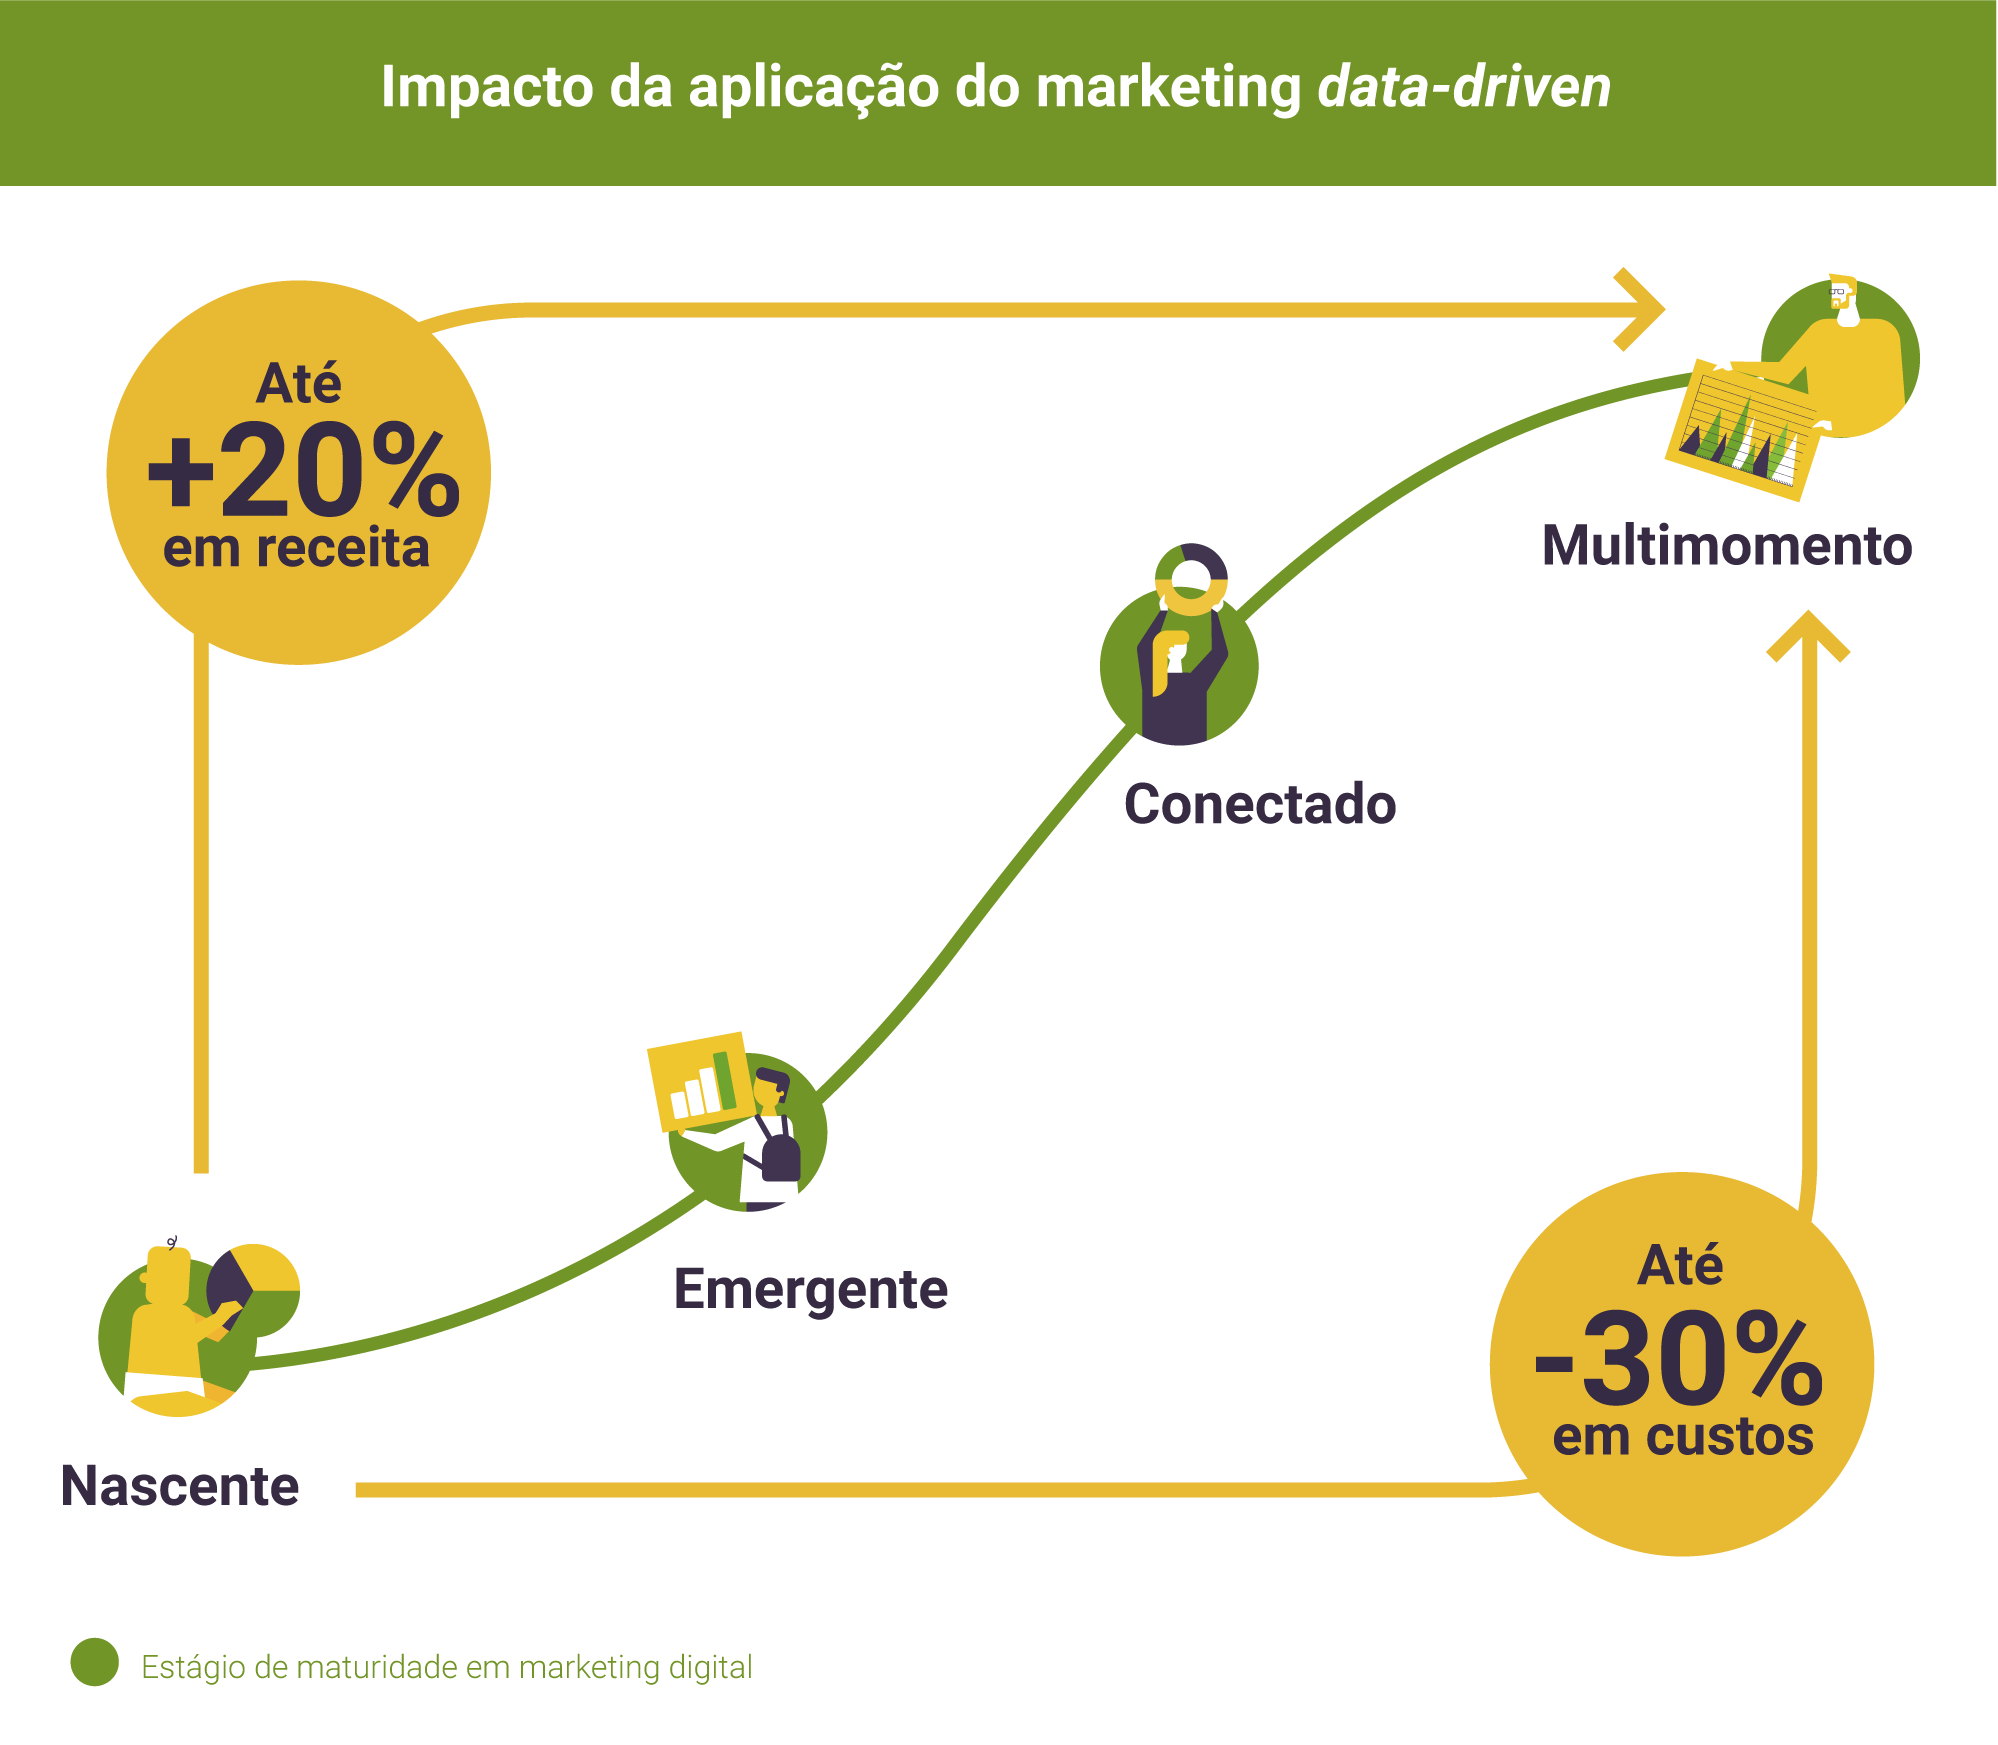 impacto da aplicação do marketing data-driven